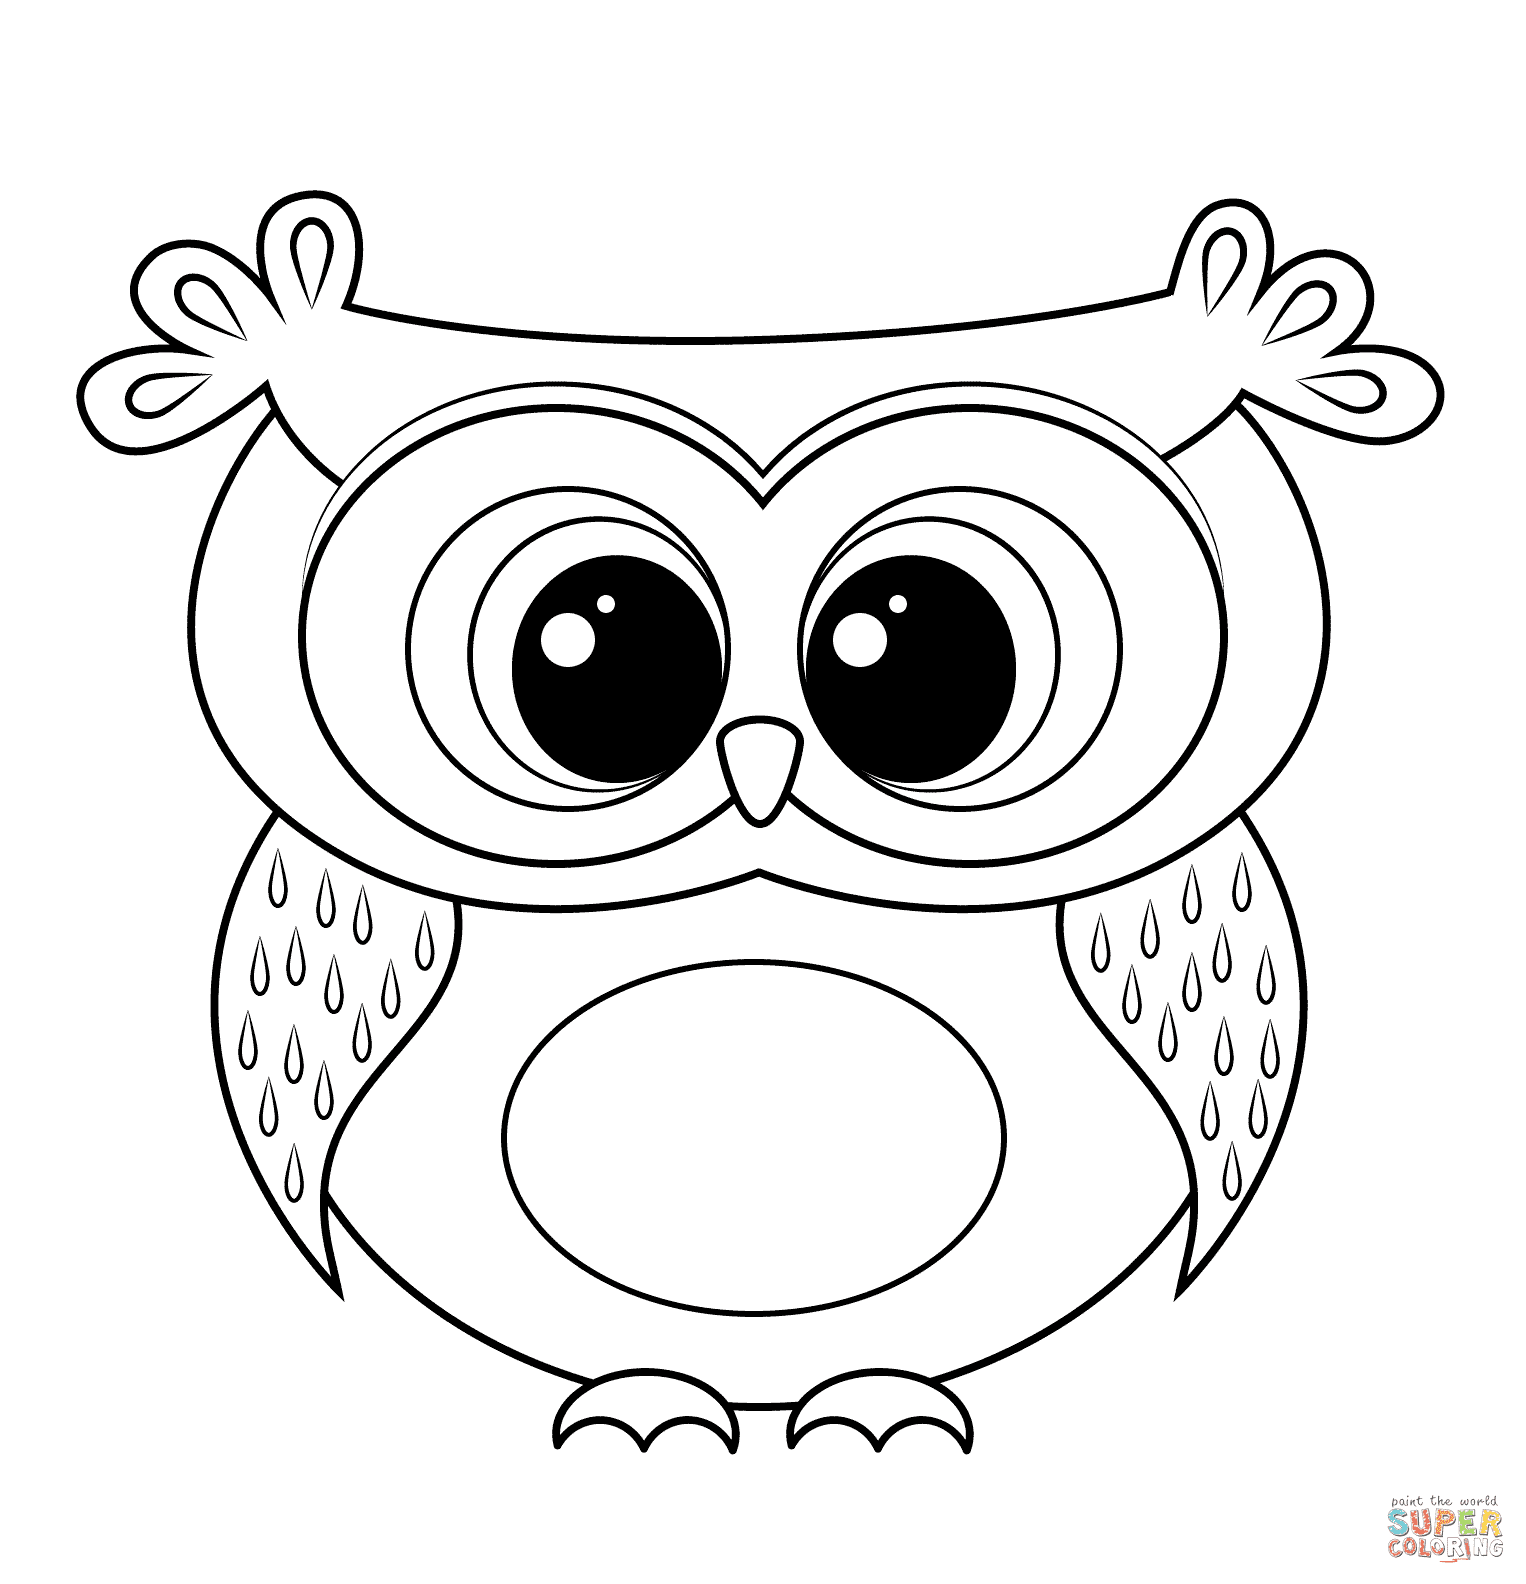 Owls Group Cartoon Characters Coloring Book Black And White Cartoon